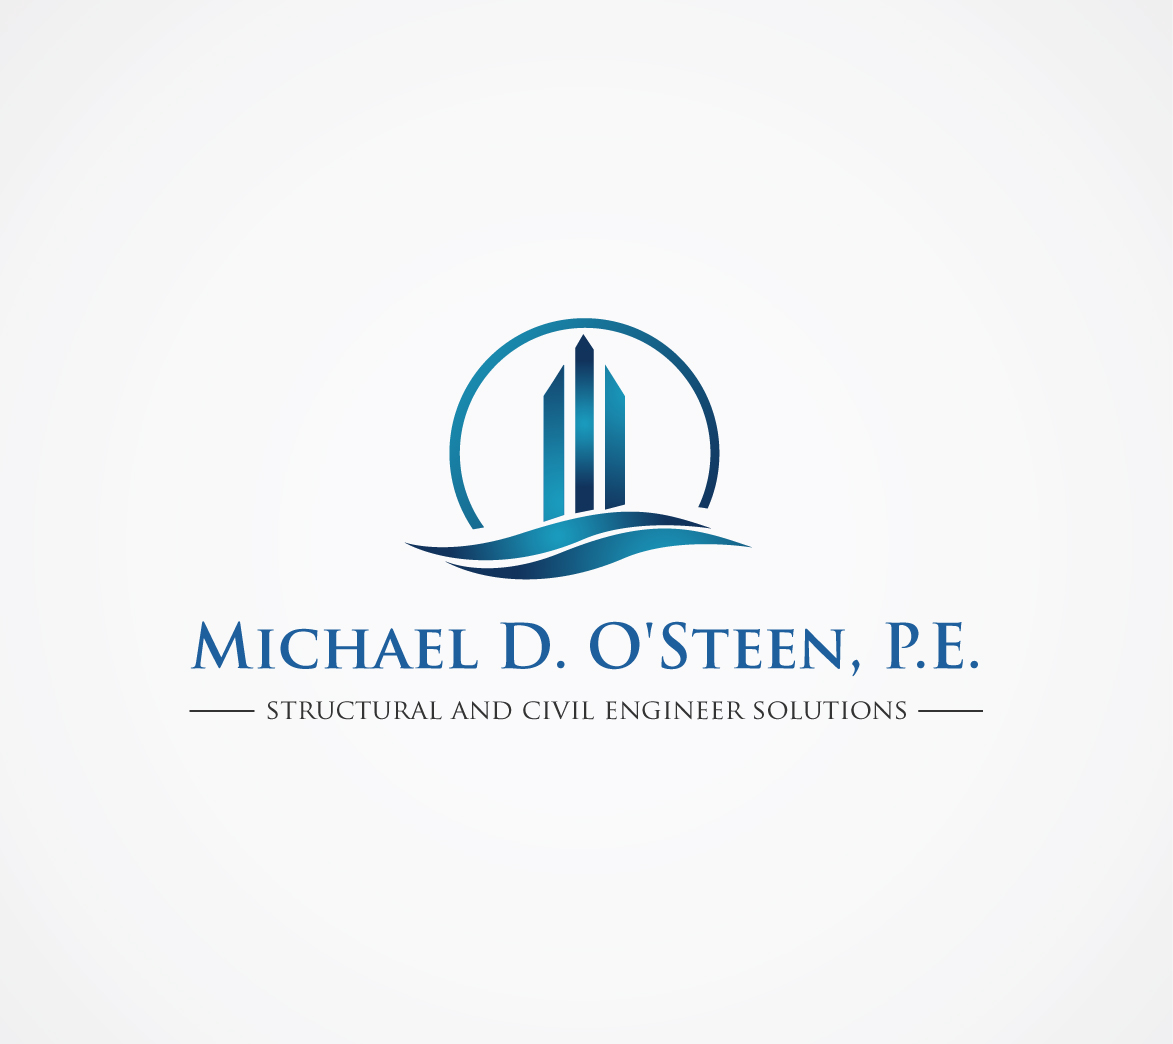 Logo Design by nila - Entry No. 134 in the Logo Design Contest Michael D. O'Steen, P.E.  Logo Design.